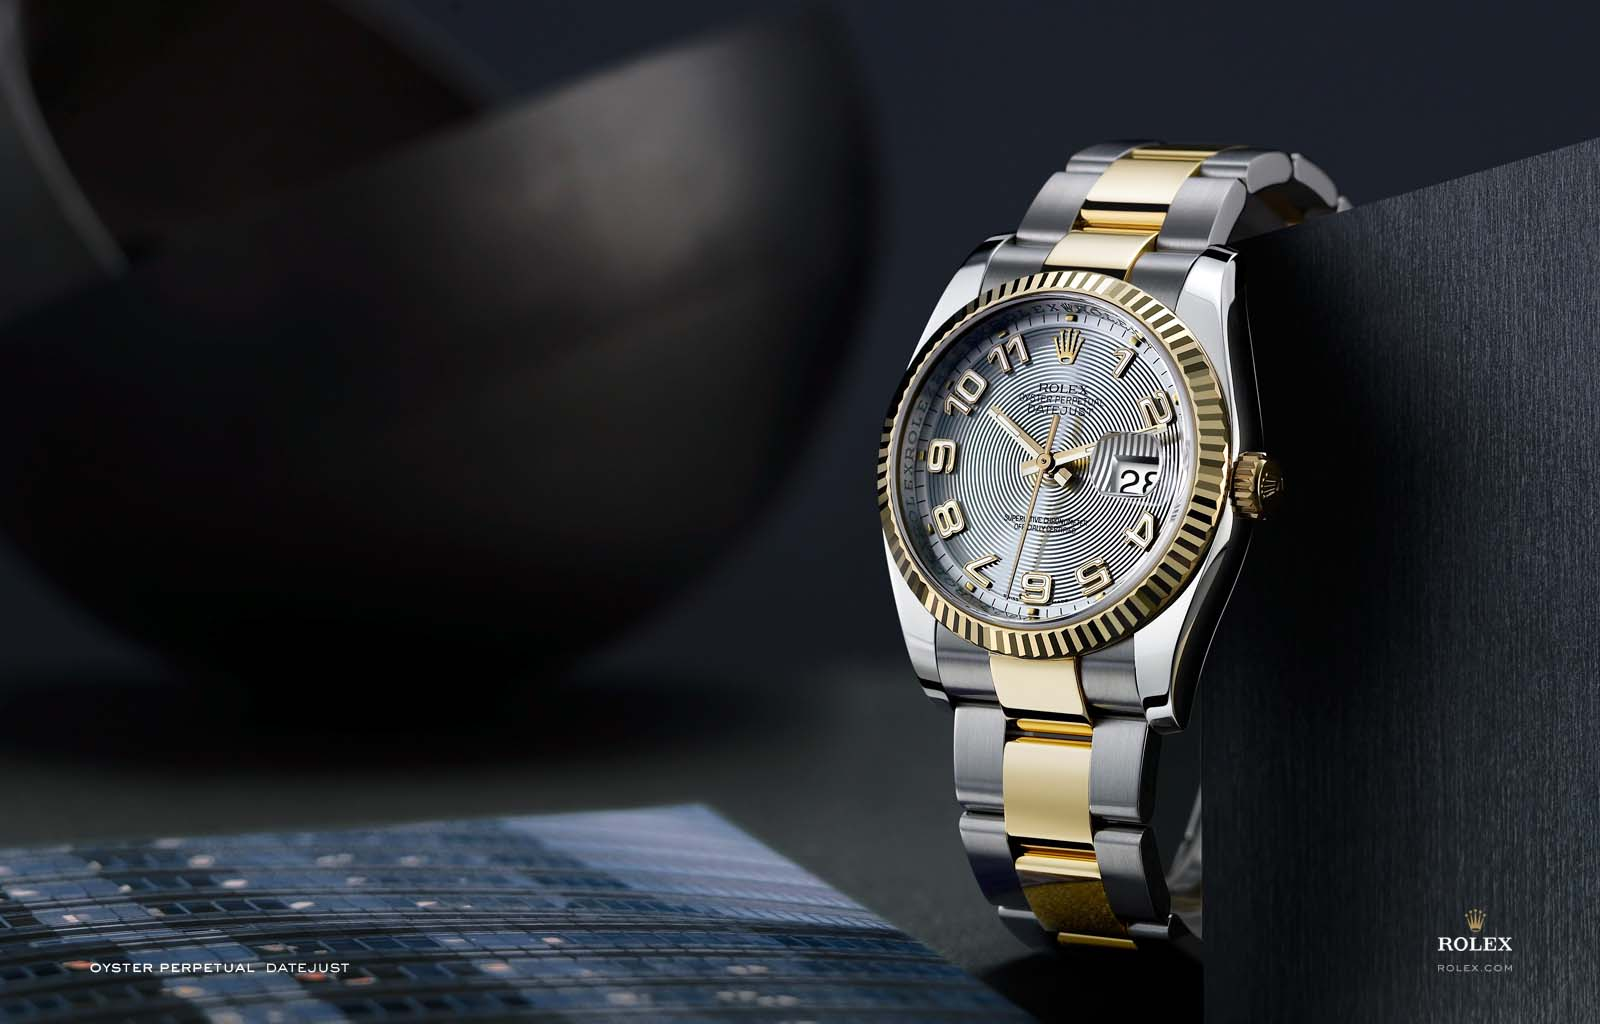 A Million Of Wallpapers Com Rolex Watches Wallpapers HD Wallpapers Download Free Images Wallpaper [1000image.com]